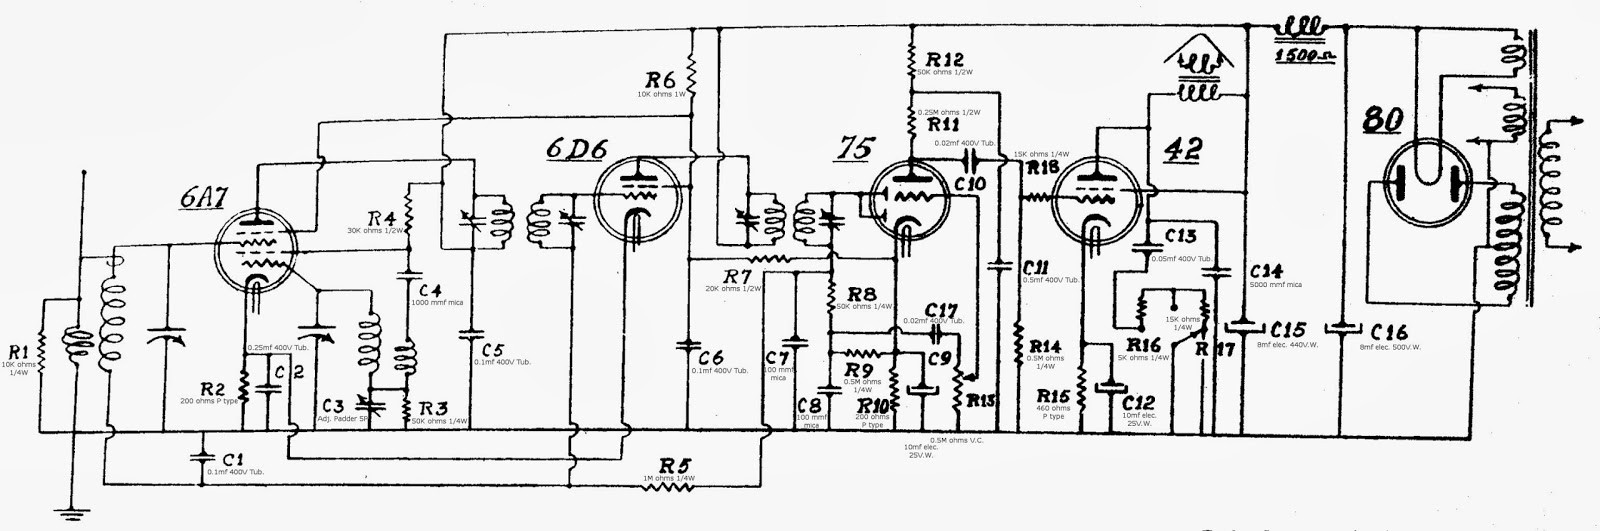 Antique Radio Forums View Topic Audio Power Transformer Questions Wiring Diagrams And Schematics With Graded Quiz Troubleshooting Heat Circuit Diagram Image